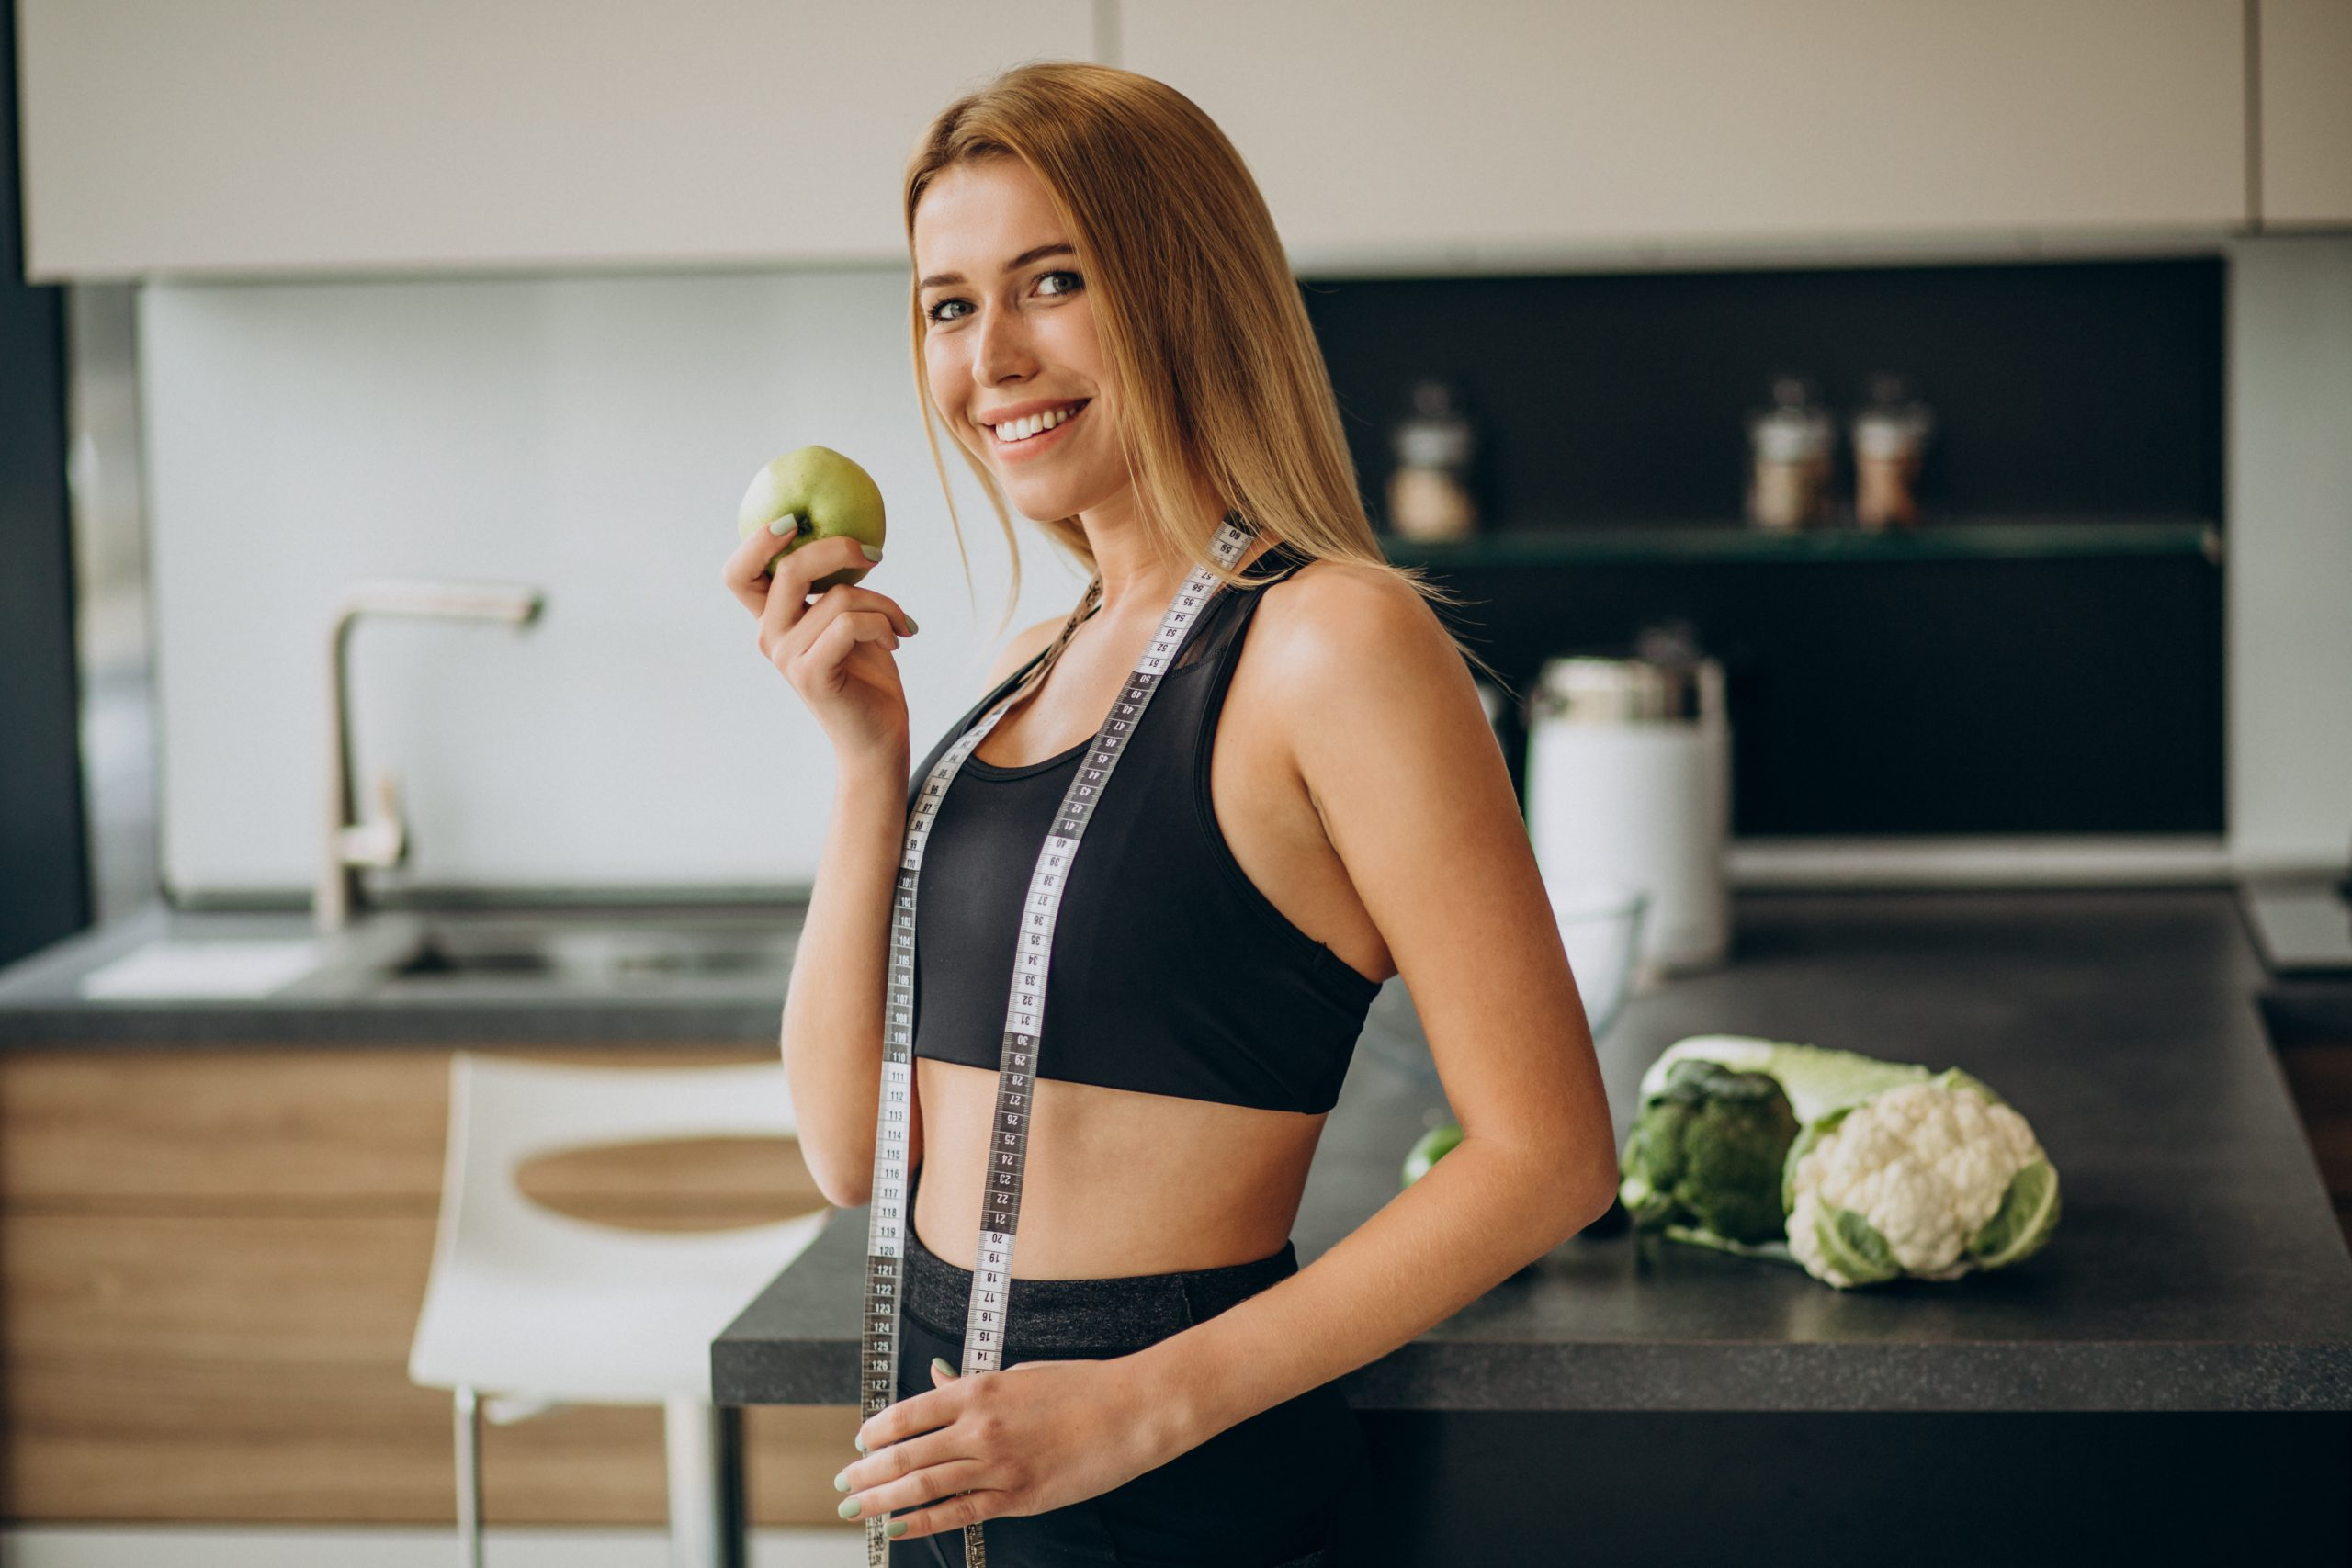 5 reasons why good nutrition is so important